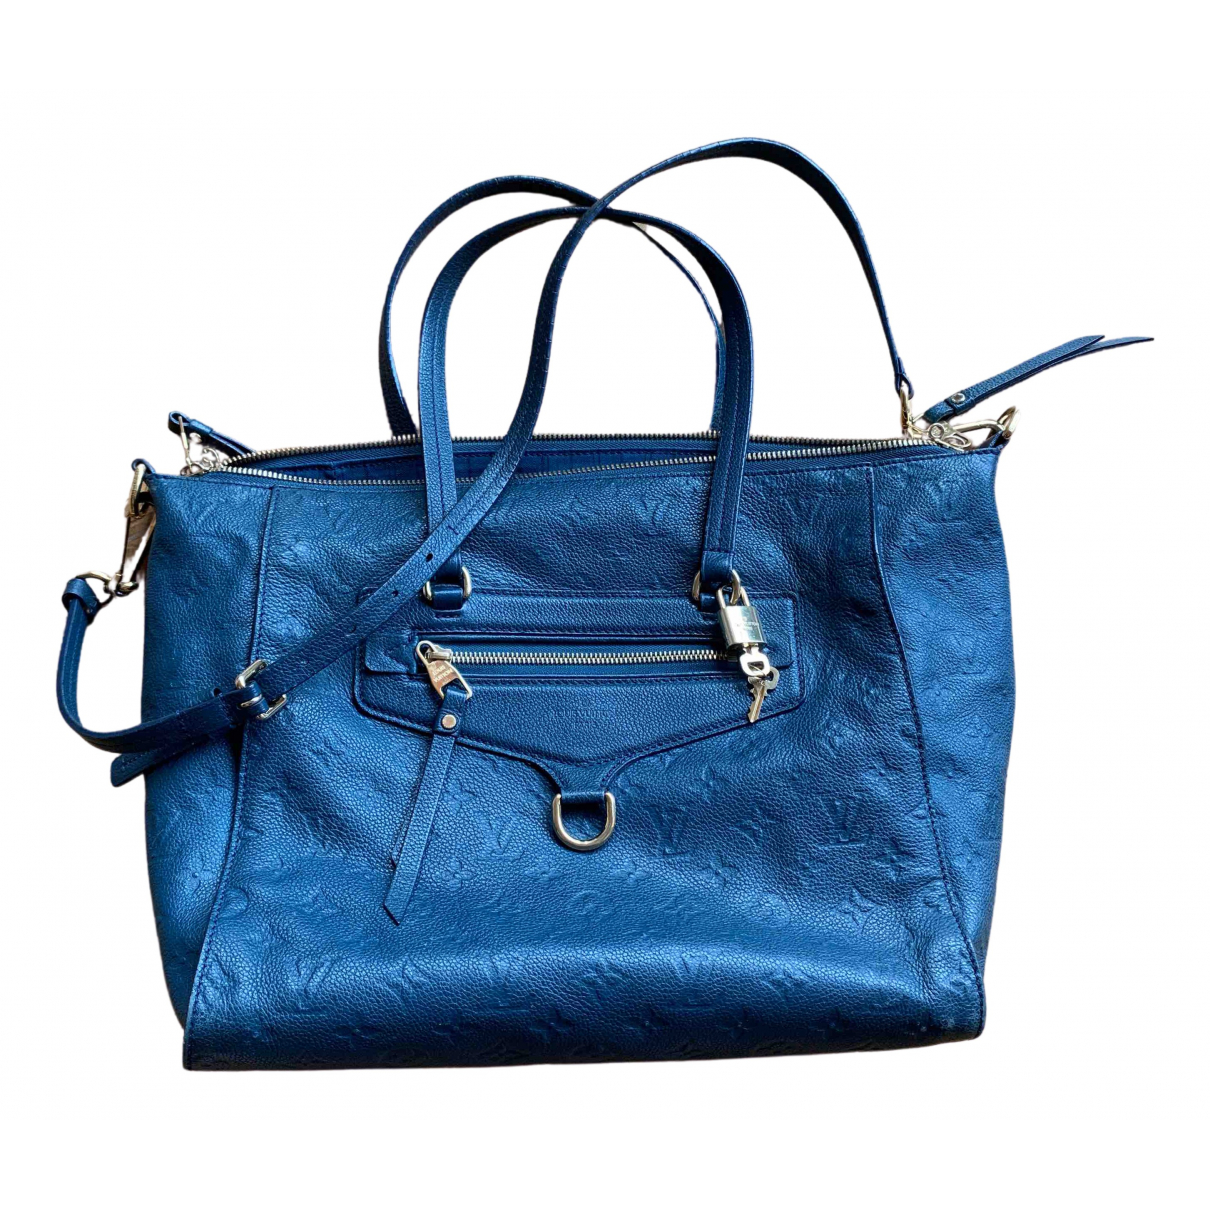 Louis Vuitton Lumineuse Blue Leather handbag for Women \N